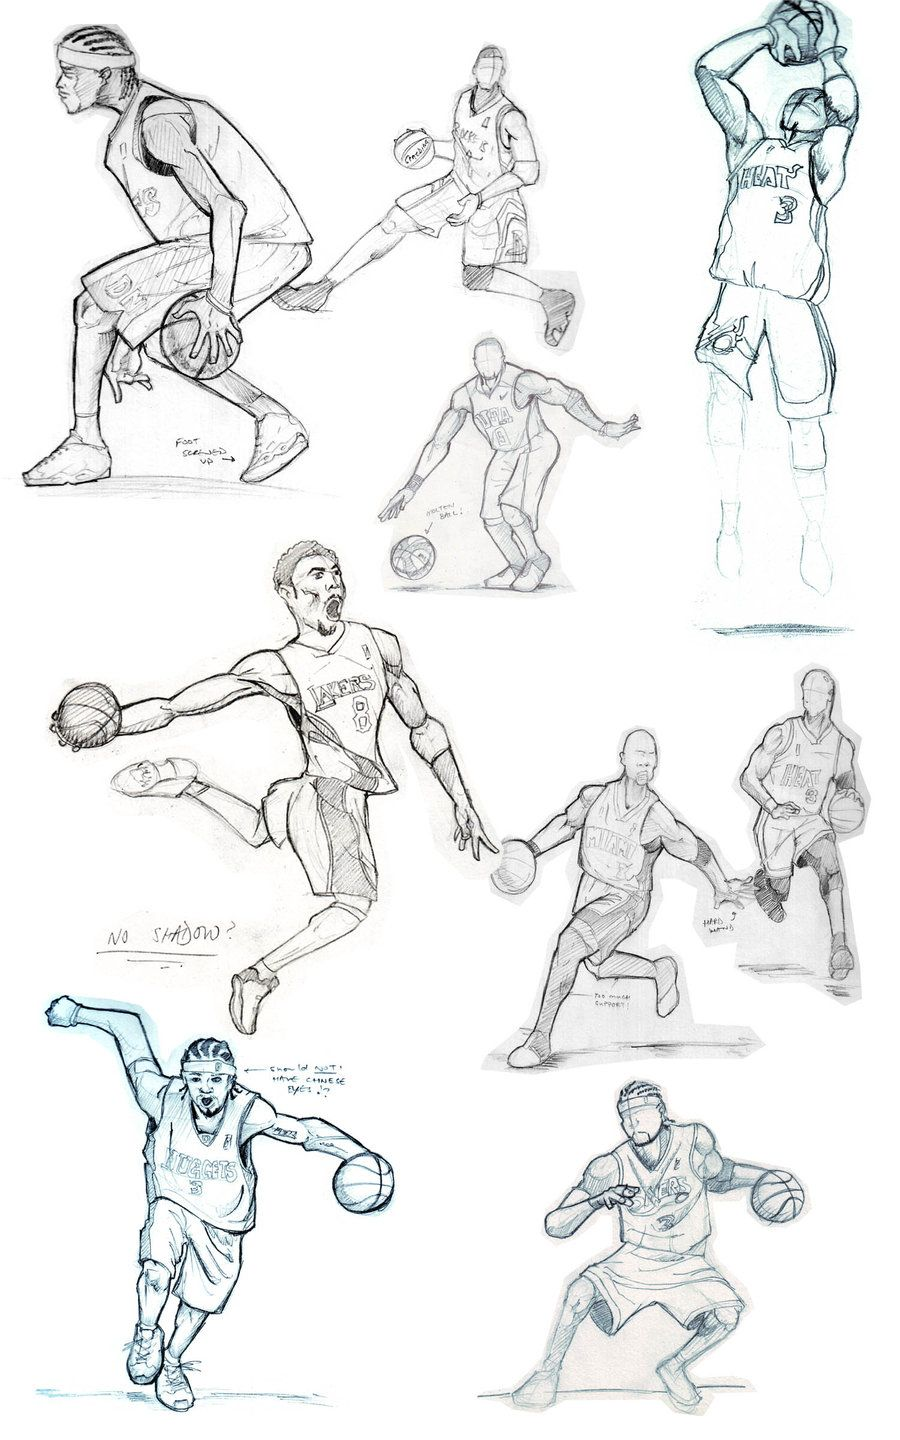 Basketball Sketches By Fatratking On Deviantart Sports Drawings Basketball Drawings Sketches